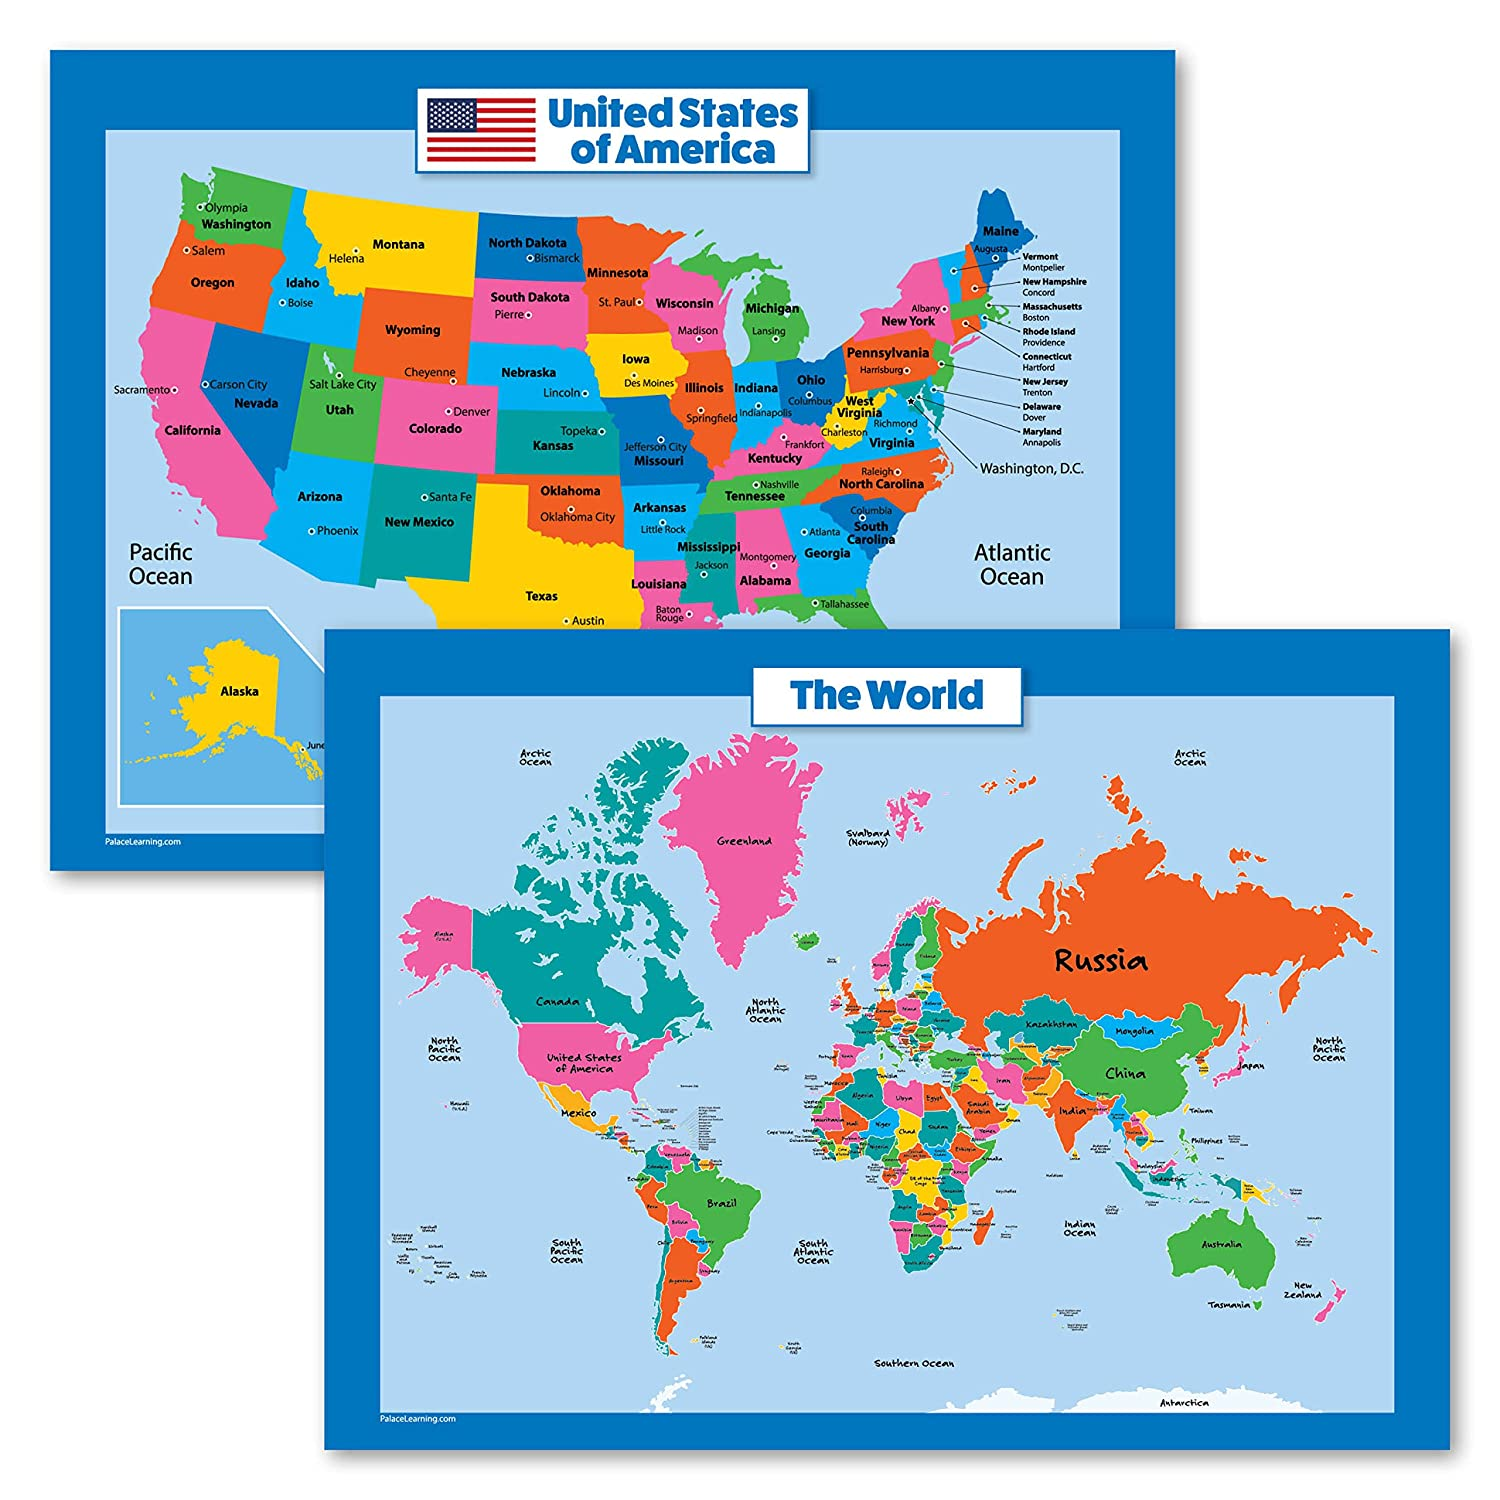 Real Map Of The United States.World Map And Usa Map For Kids 2 Poster Set Laminated Wall Chart Poster Of The United States And The World 18 X 24